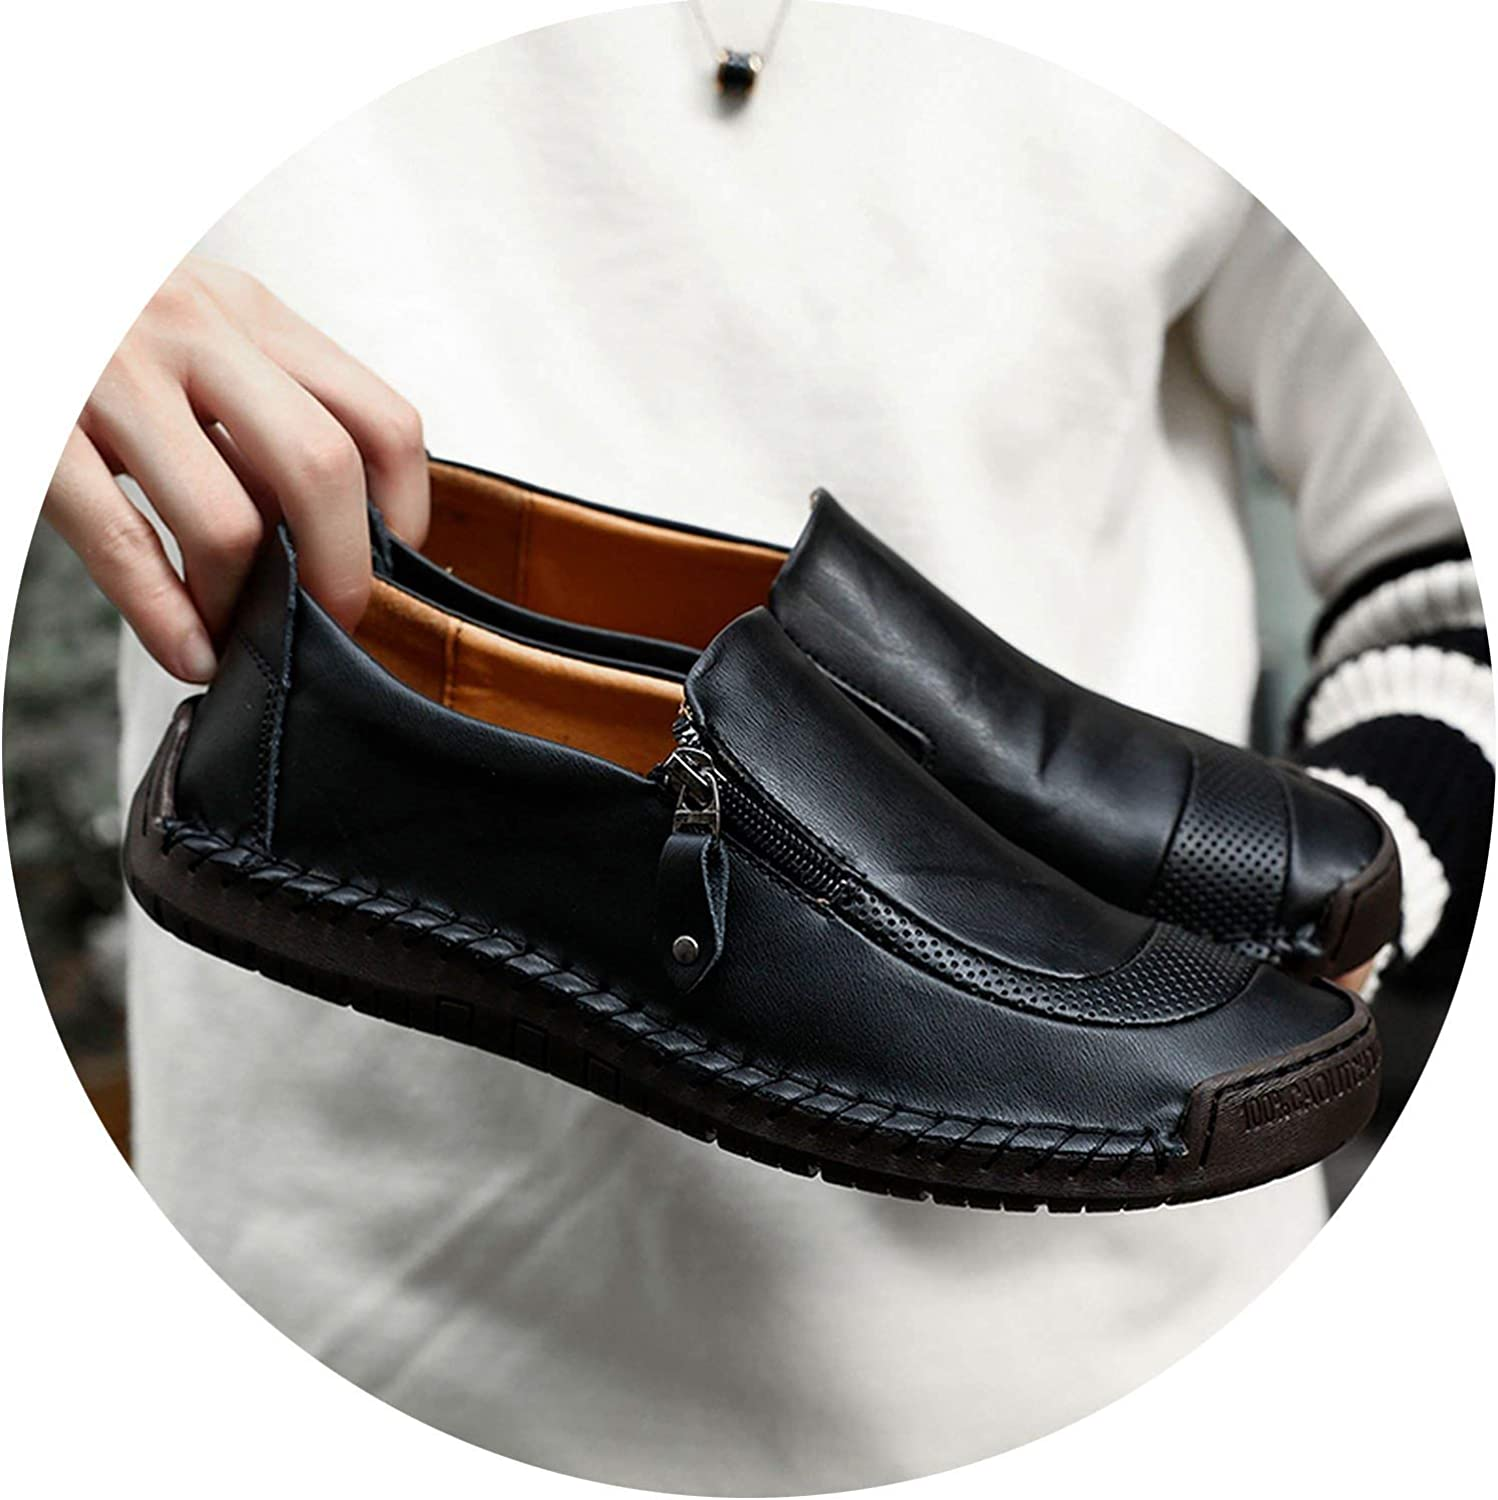 Every kind of beauty 2019 Big Size 38-48 Brand Genuine Leather Men shoes Fashion Casual shoes Breathable Men Flats Loafers Men's Driving shoes